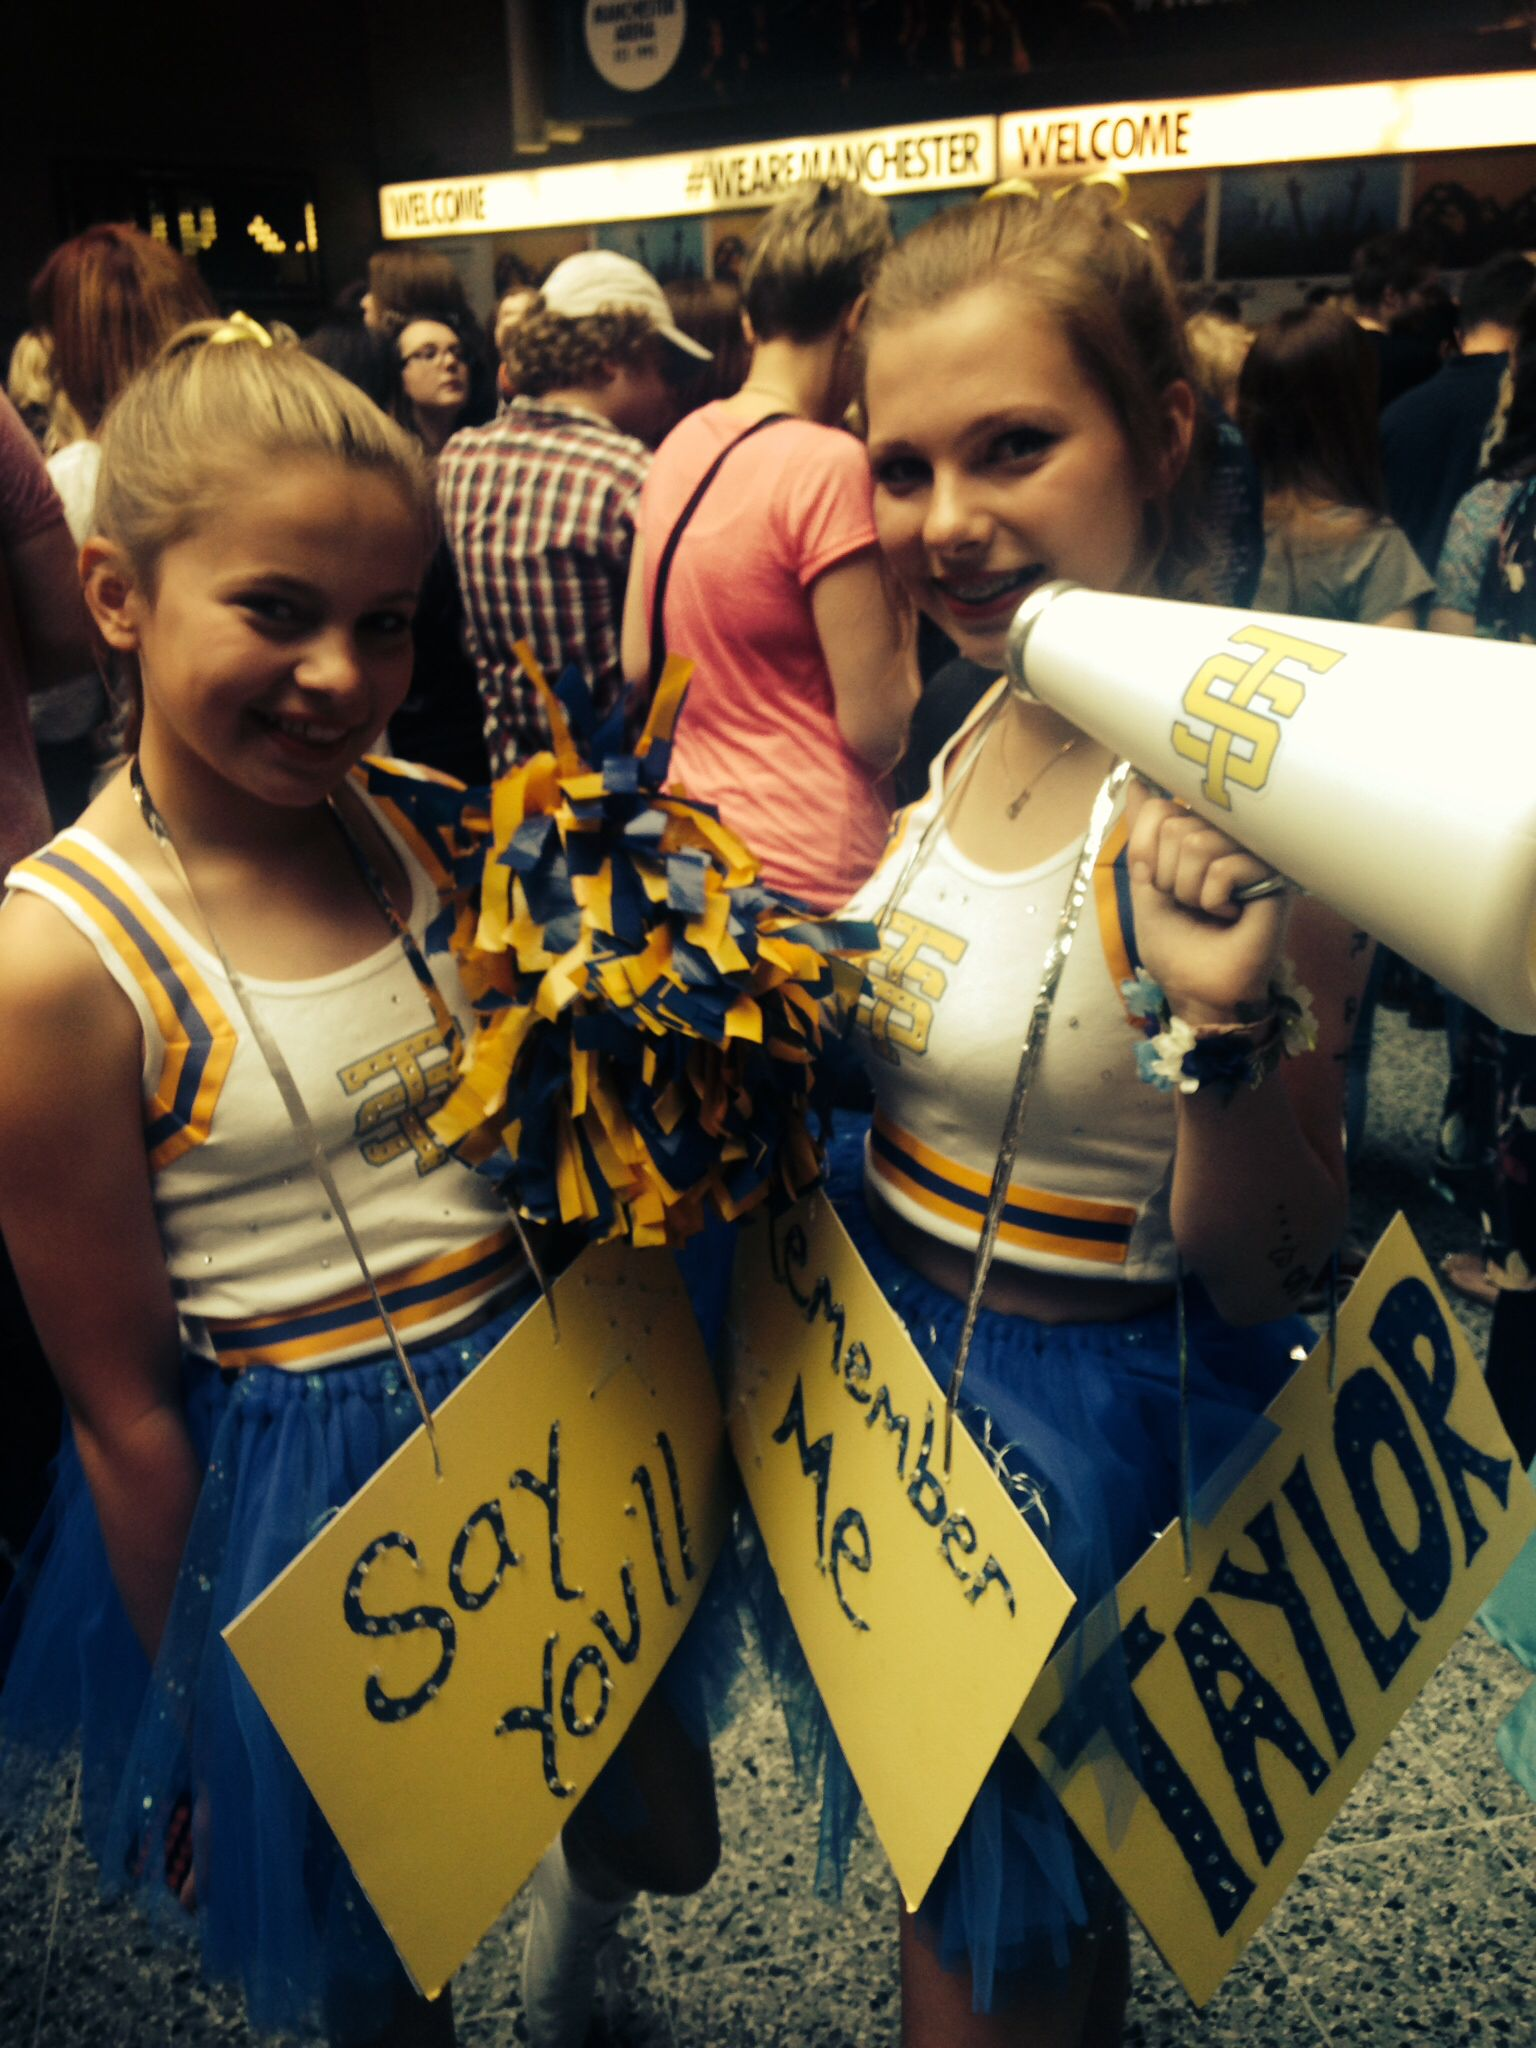 Cute Fan Costumes At The 1989 World Tour Manchester